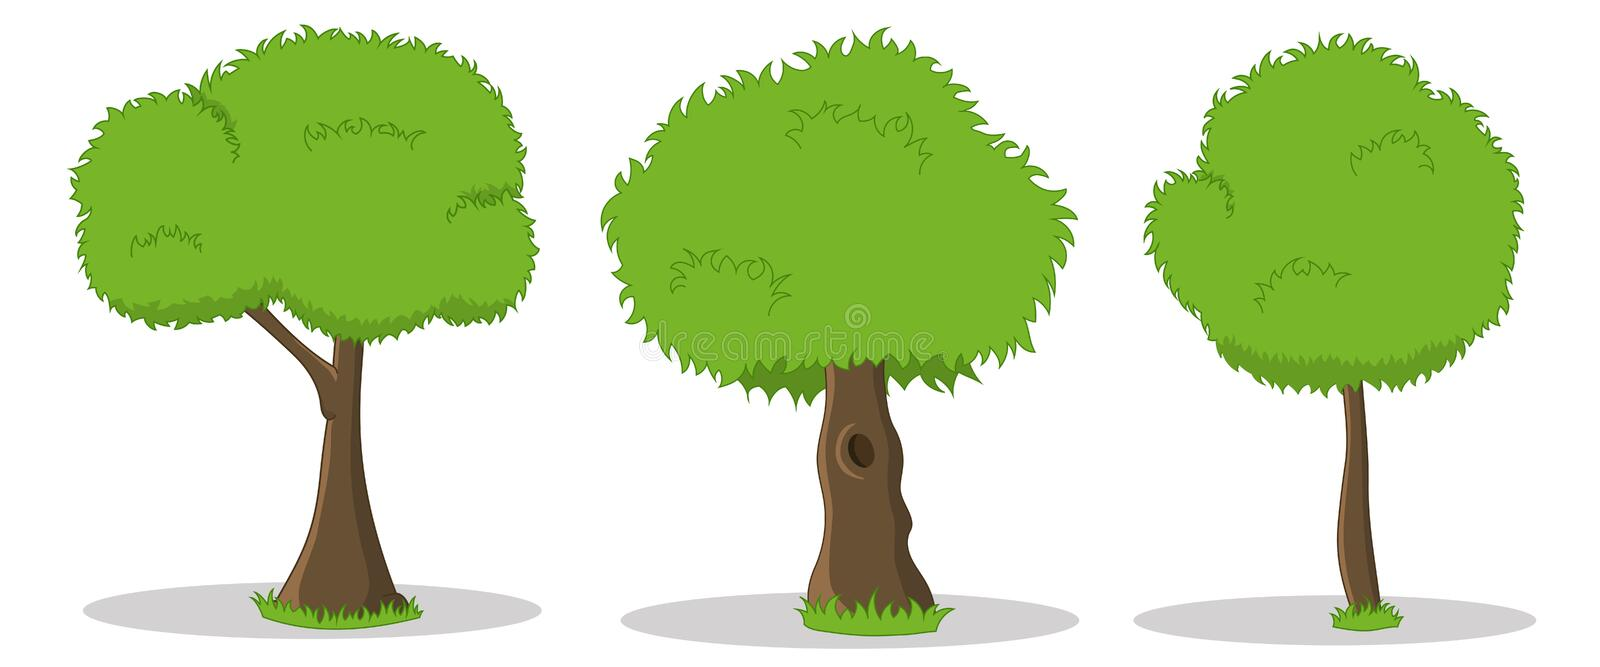 Hand drawn cartoon illustrations of green trees. Hand drawn cartoon illustrations. green trees stock illustration